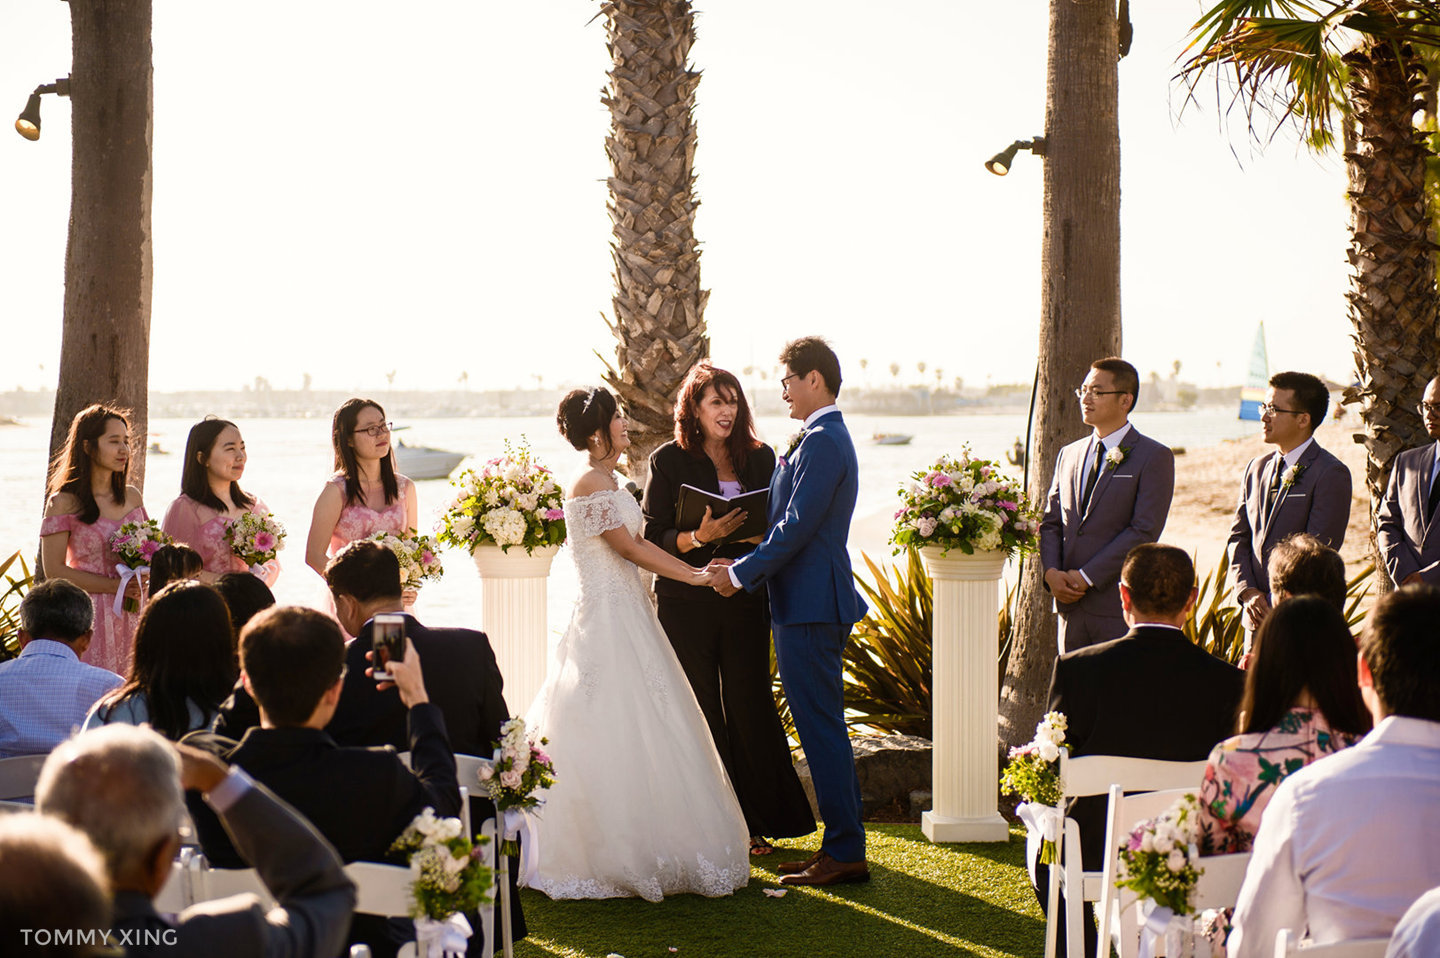 Paradise Point Resort Wedding Xiaolu & Bin San Diego 圣地亚哥婚礼摄影跟拍 Tommy Xing Photography 洛杉矶婚礼婚纱照摄影师 162.jpg